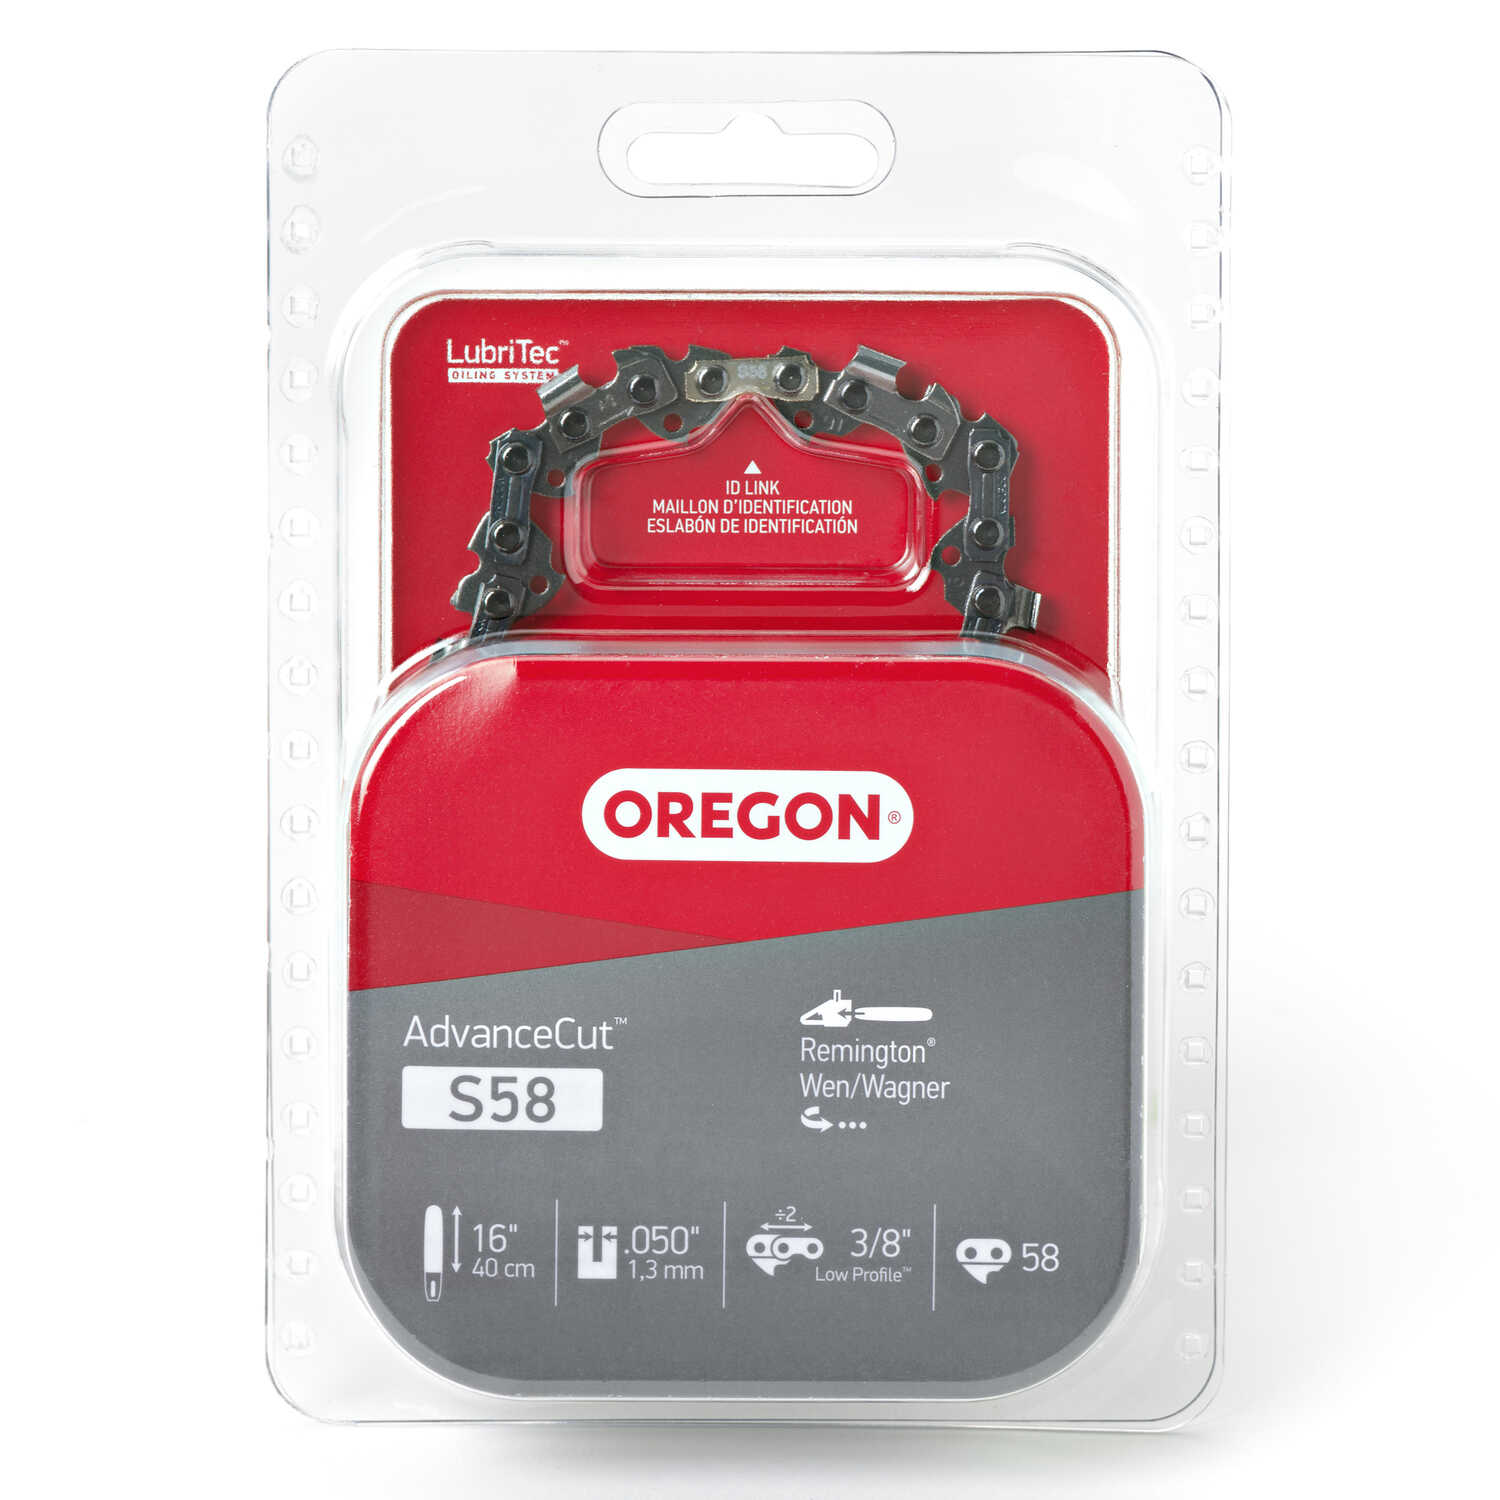 Oregon  Advance Cut  16 in. 58 links Chainsaw Chain